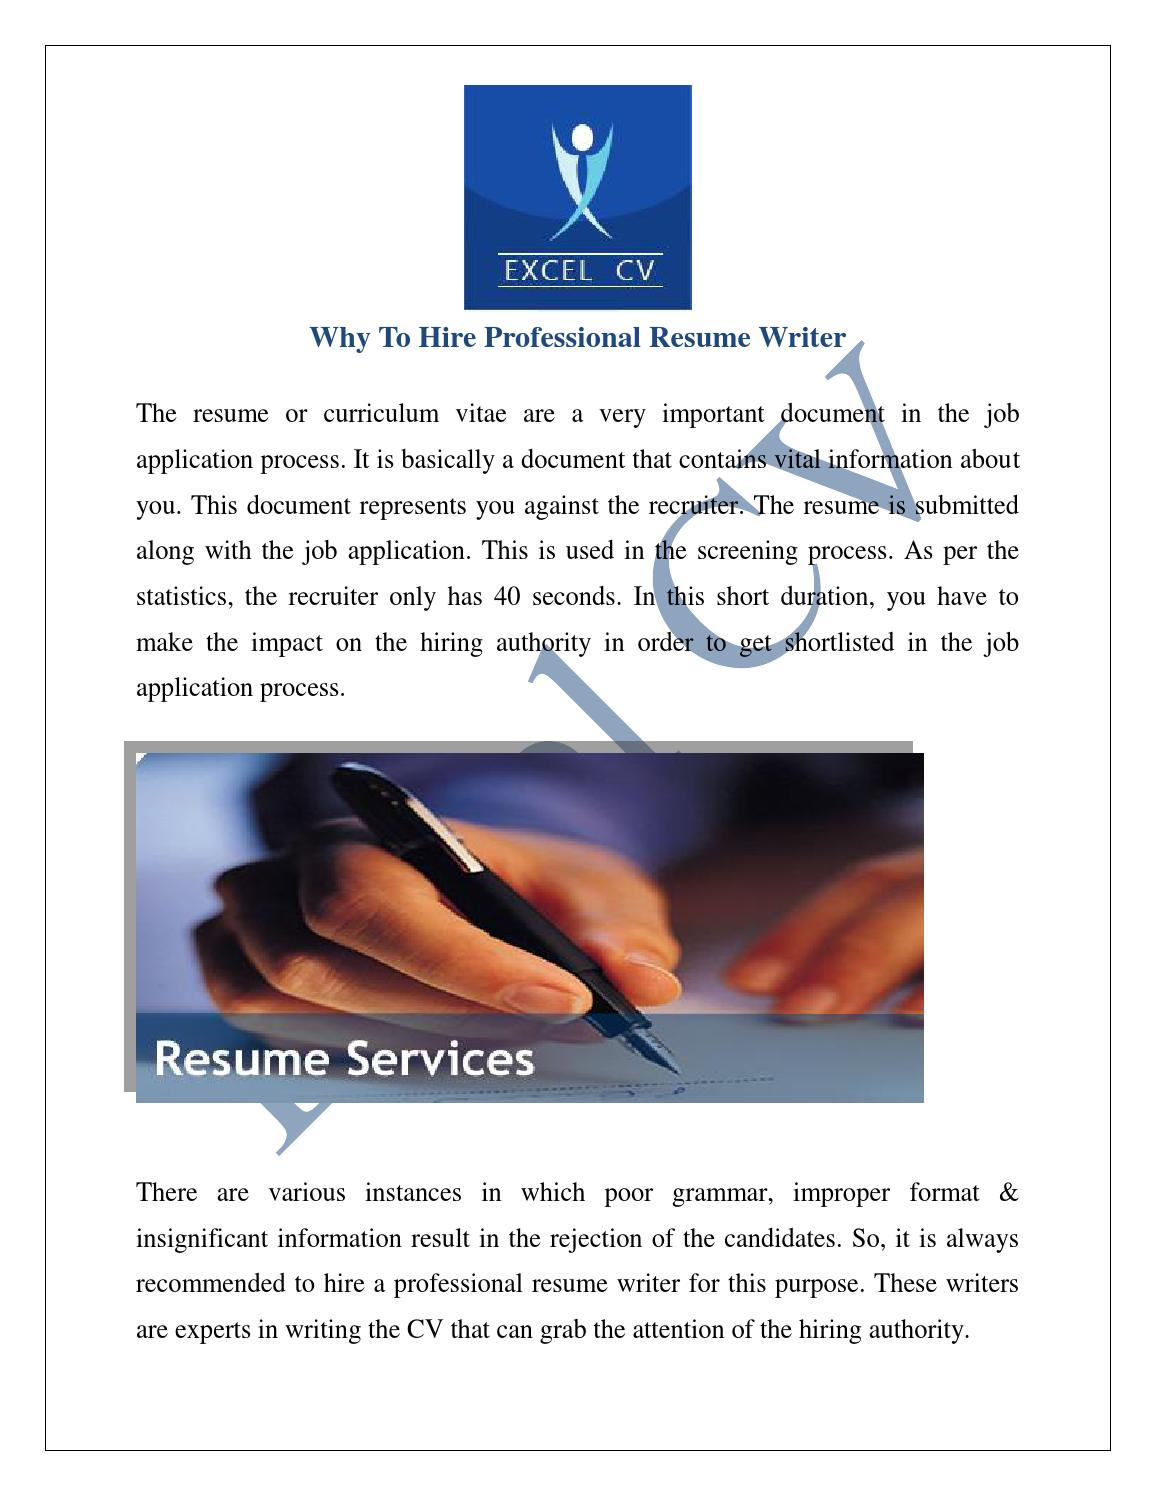 best resume writing service How to evaluate and choose a resume writing service, certifications, guarantees, and what to look for when hiring a professional resume writer.